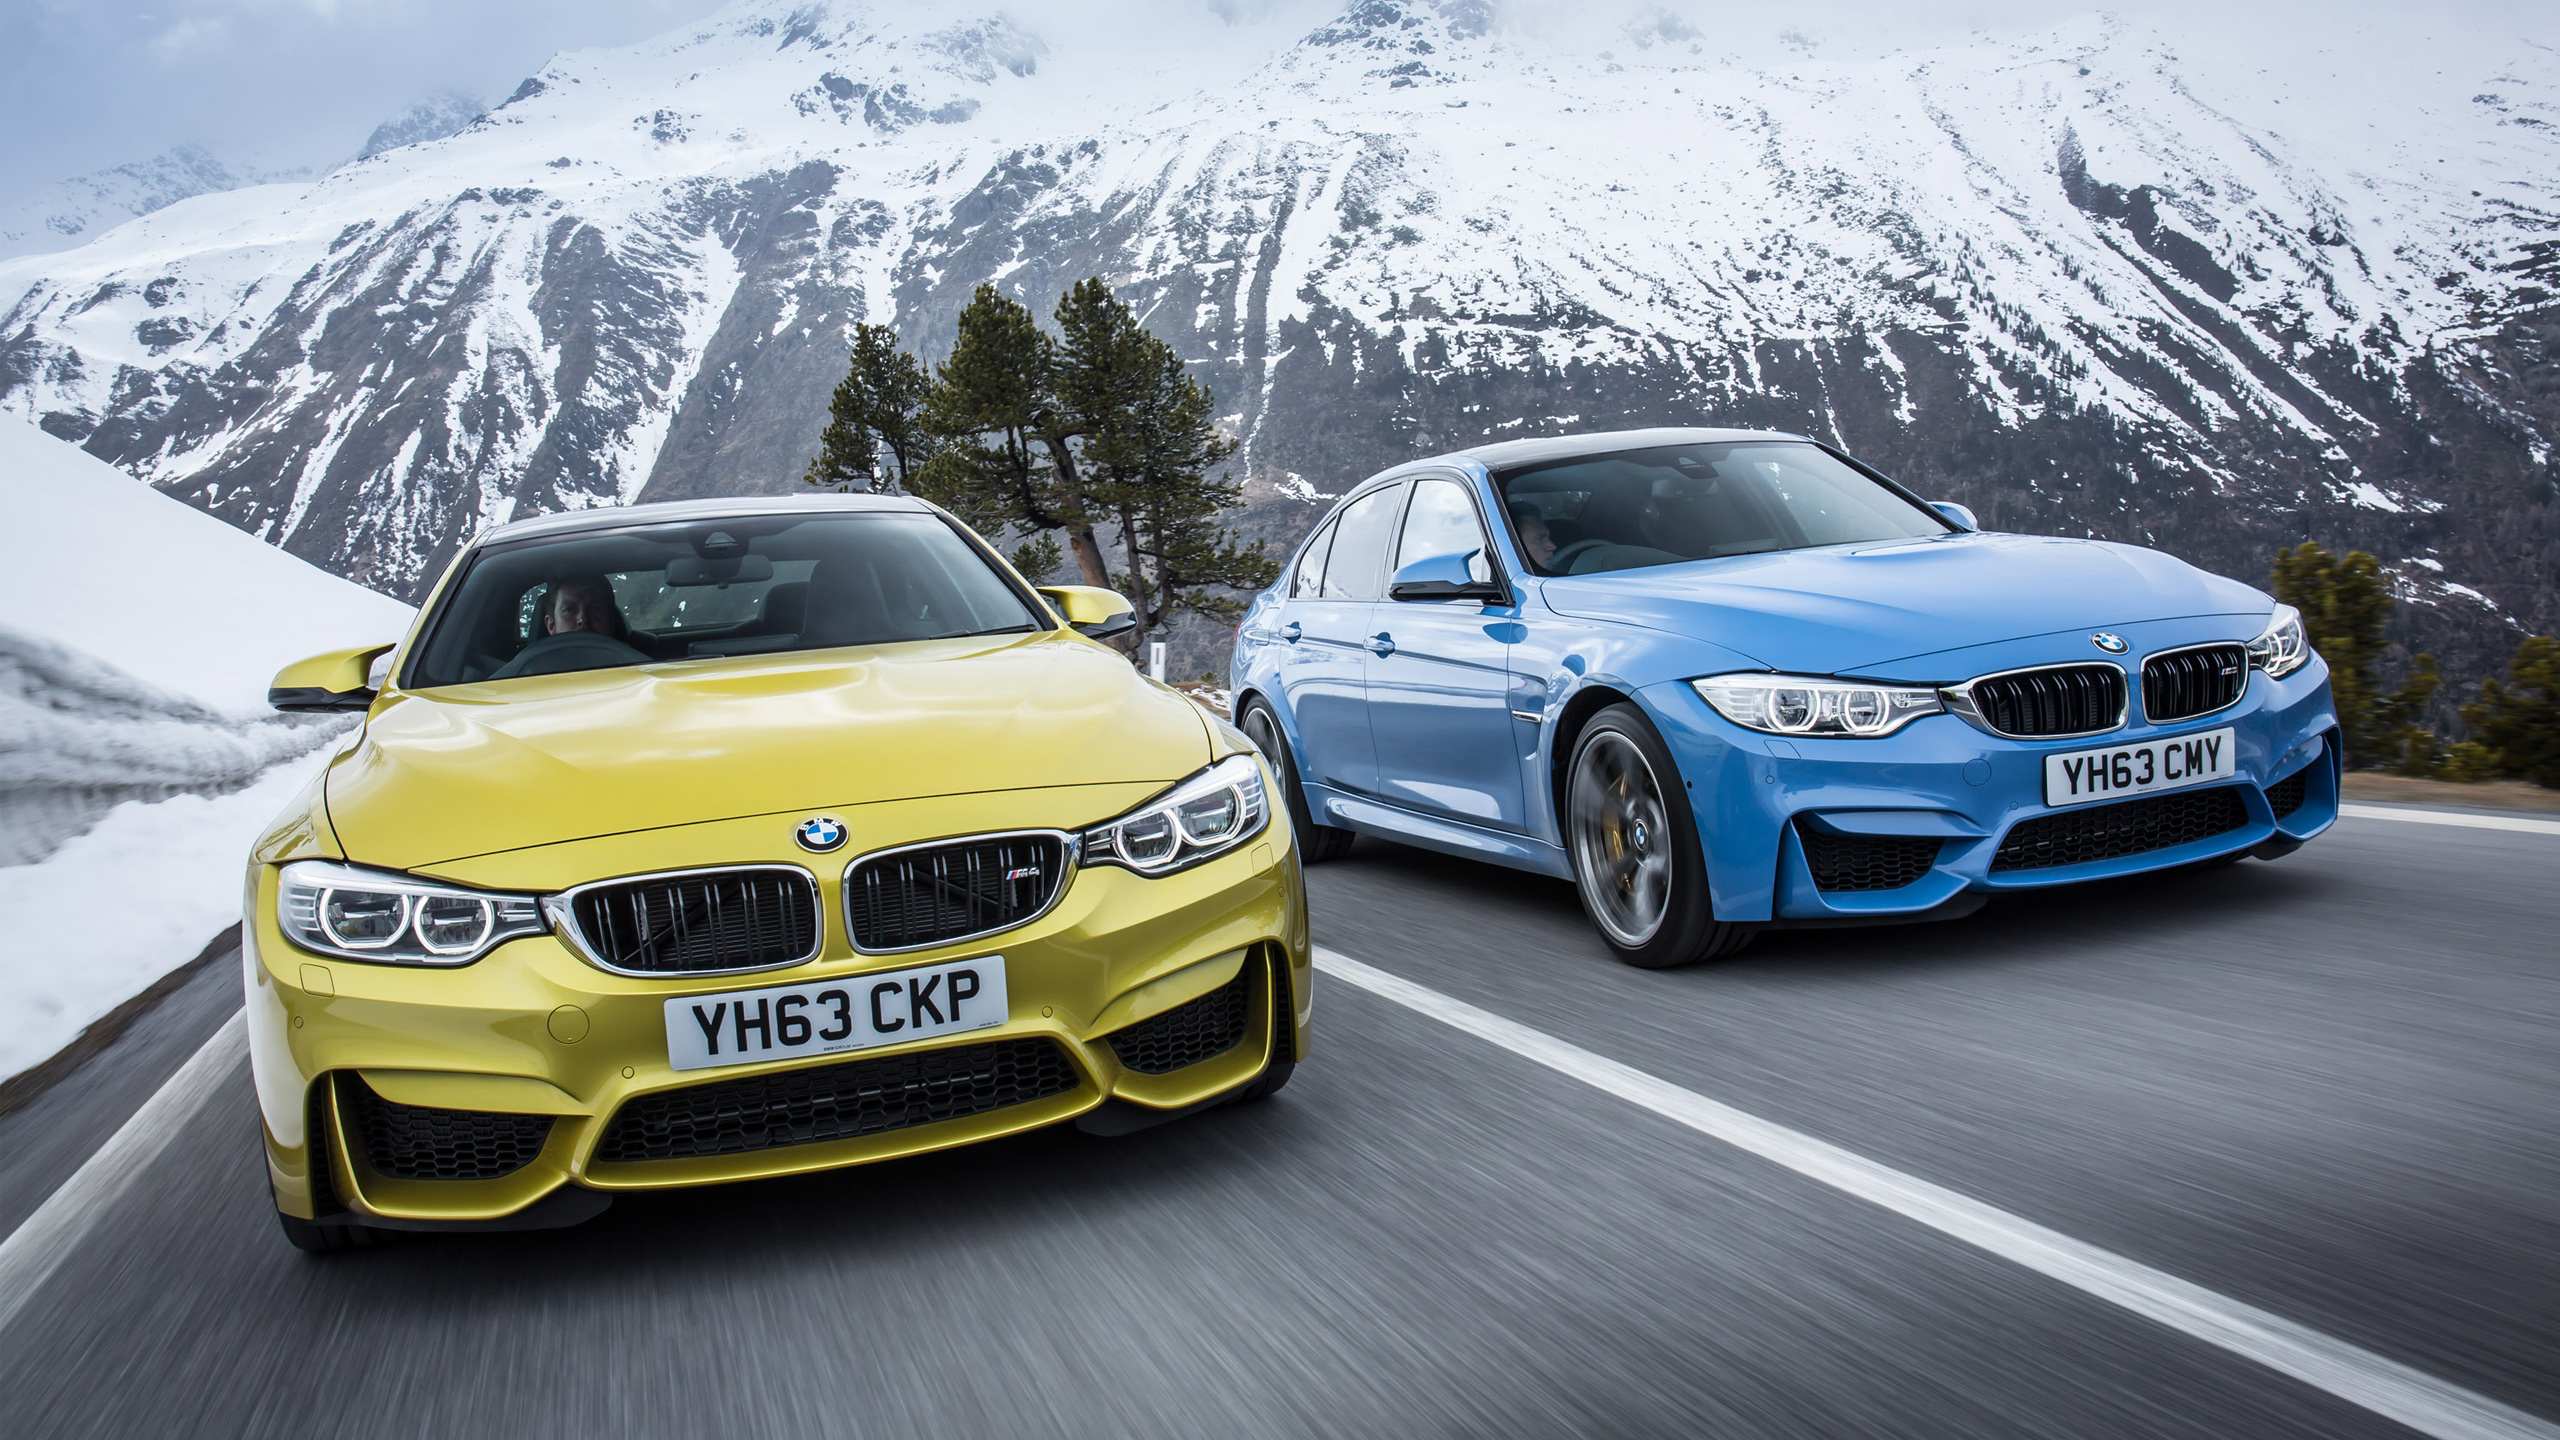 2014 BMW M4 Coupe UK Wallpaper | HD Car Wallpapers